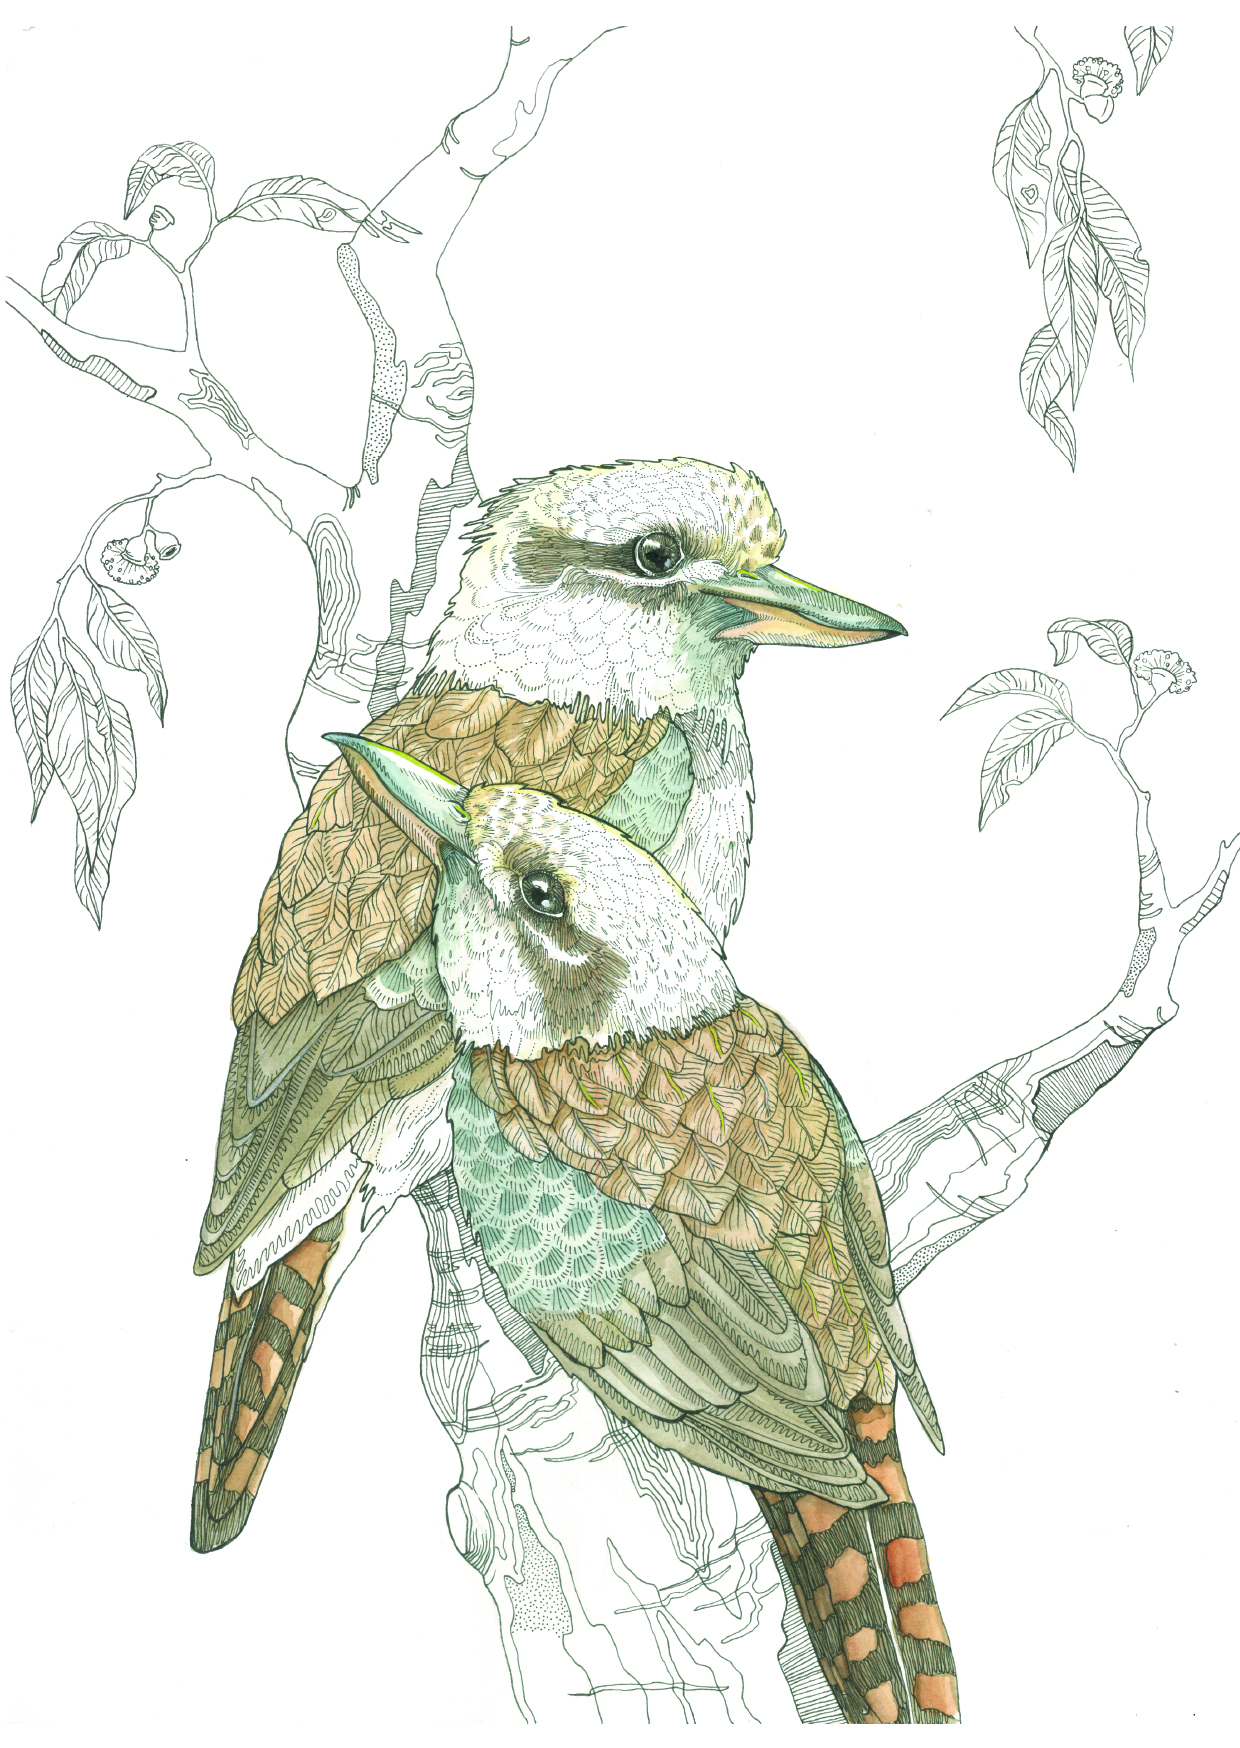 Two Kookaburras 2016 Watercolour and Ink on 100% cotton paper